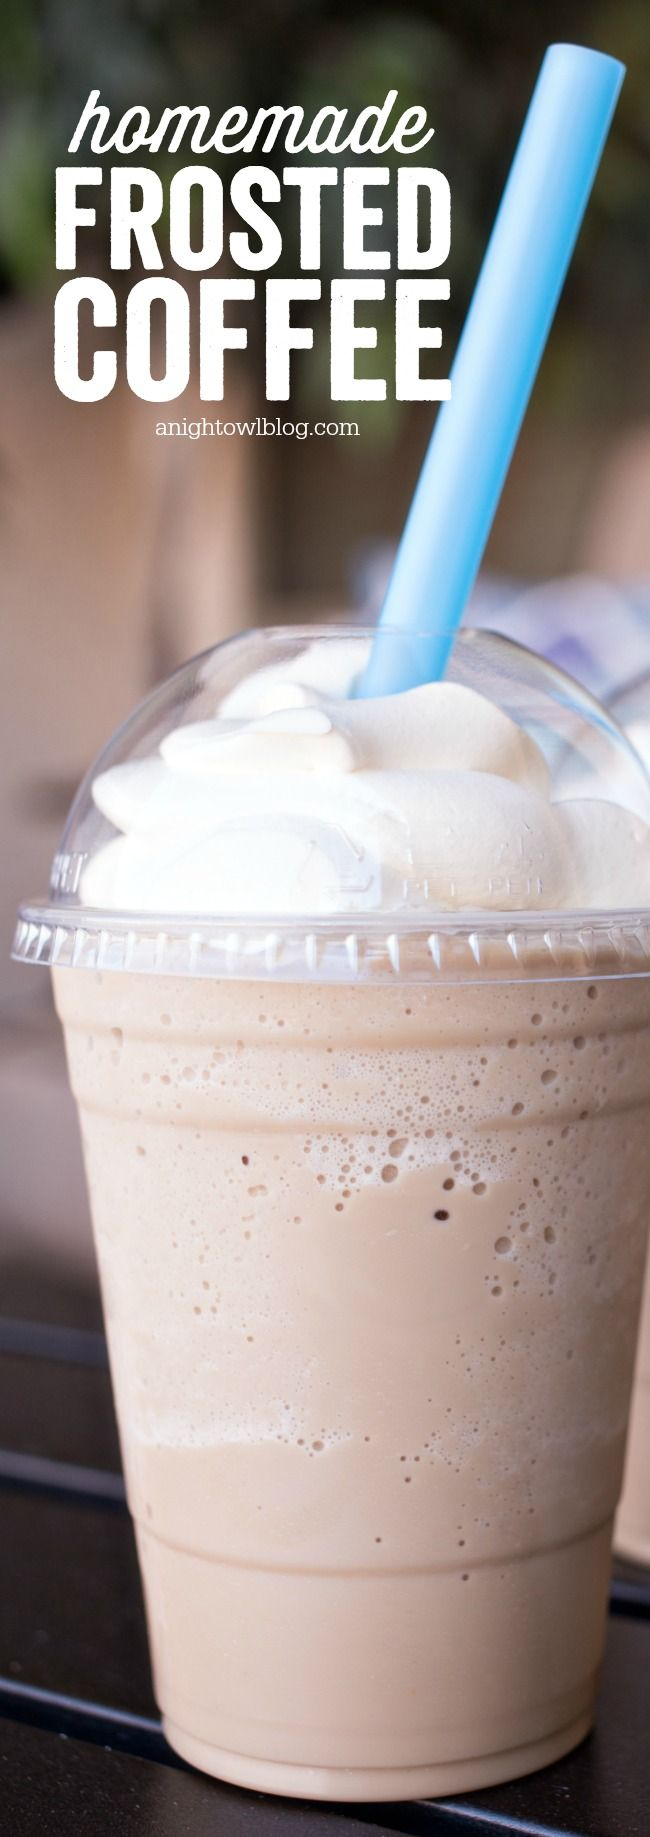 This Homemade Frosted Coffee is the perfect coffee treat for the summer! Check out the step by step recipe!